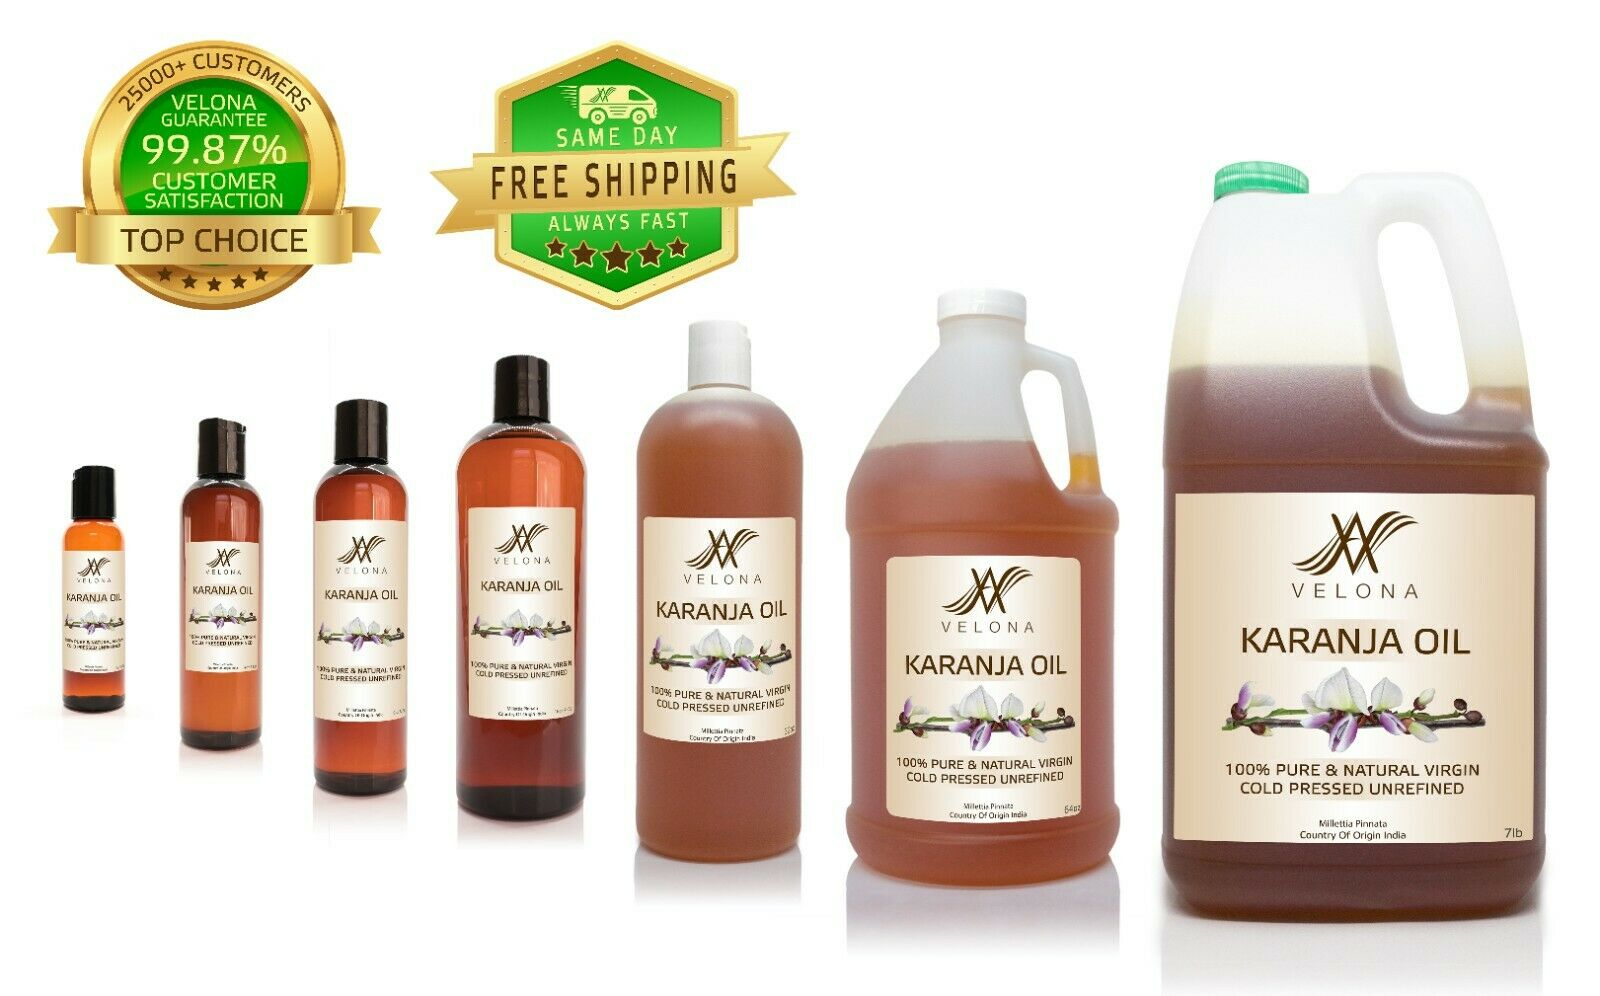 Karanja Oil 2oz-7lb UNREFINED NATURAL VIRGIN Cold Pressed 100% PURE VELONA Health & Beauty